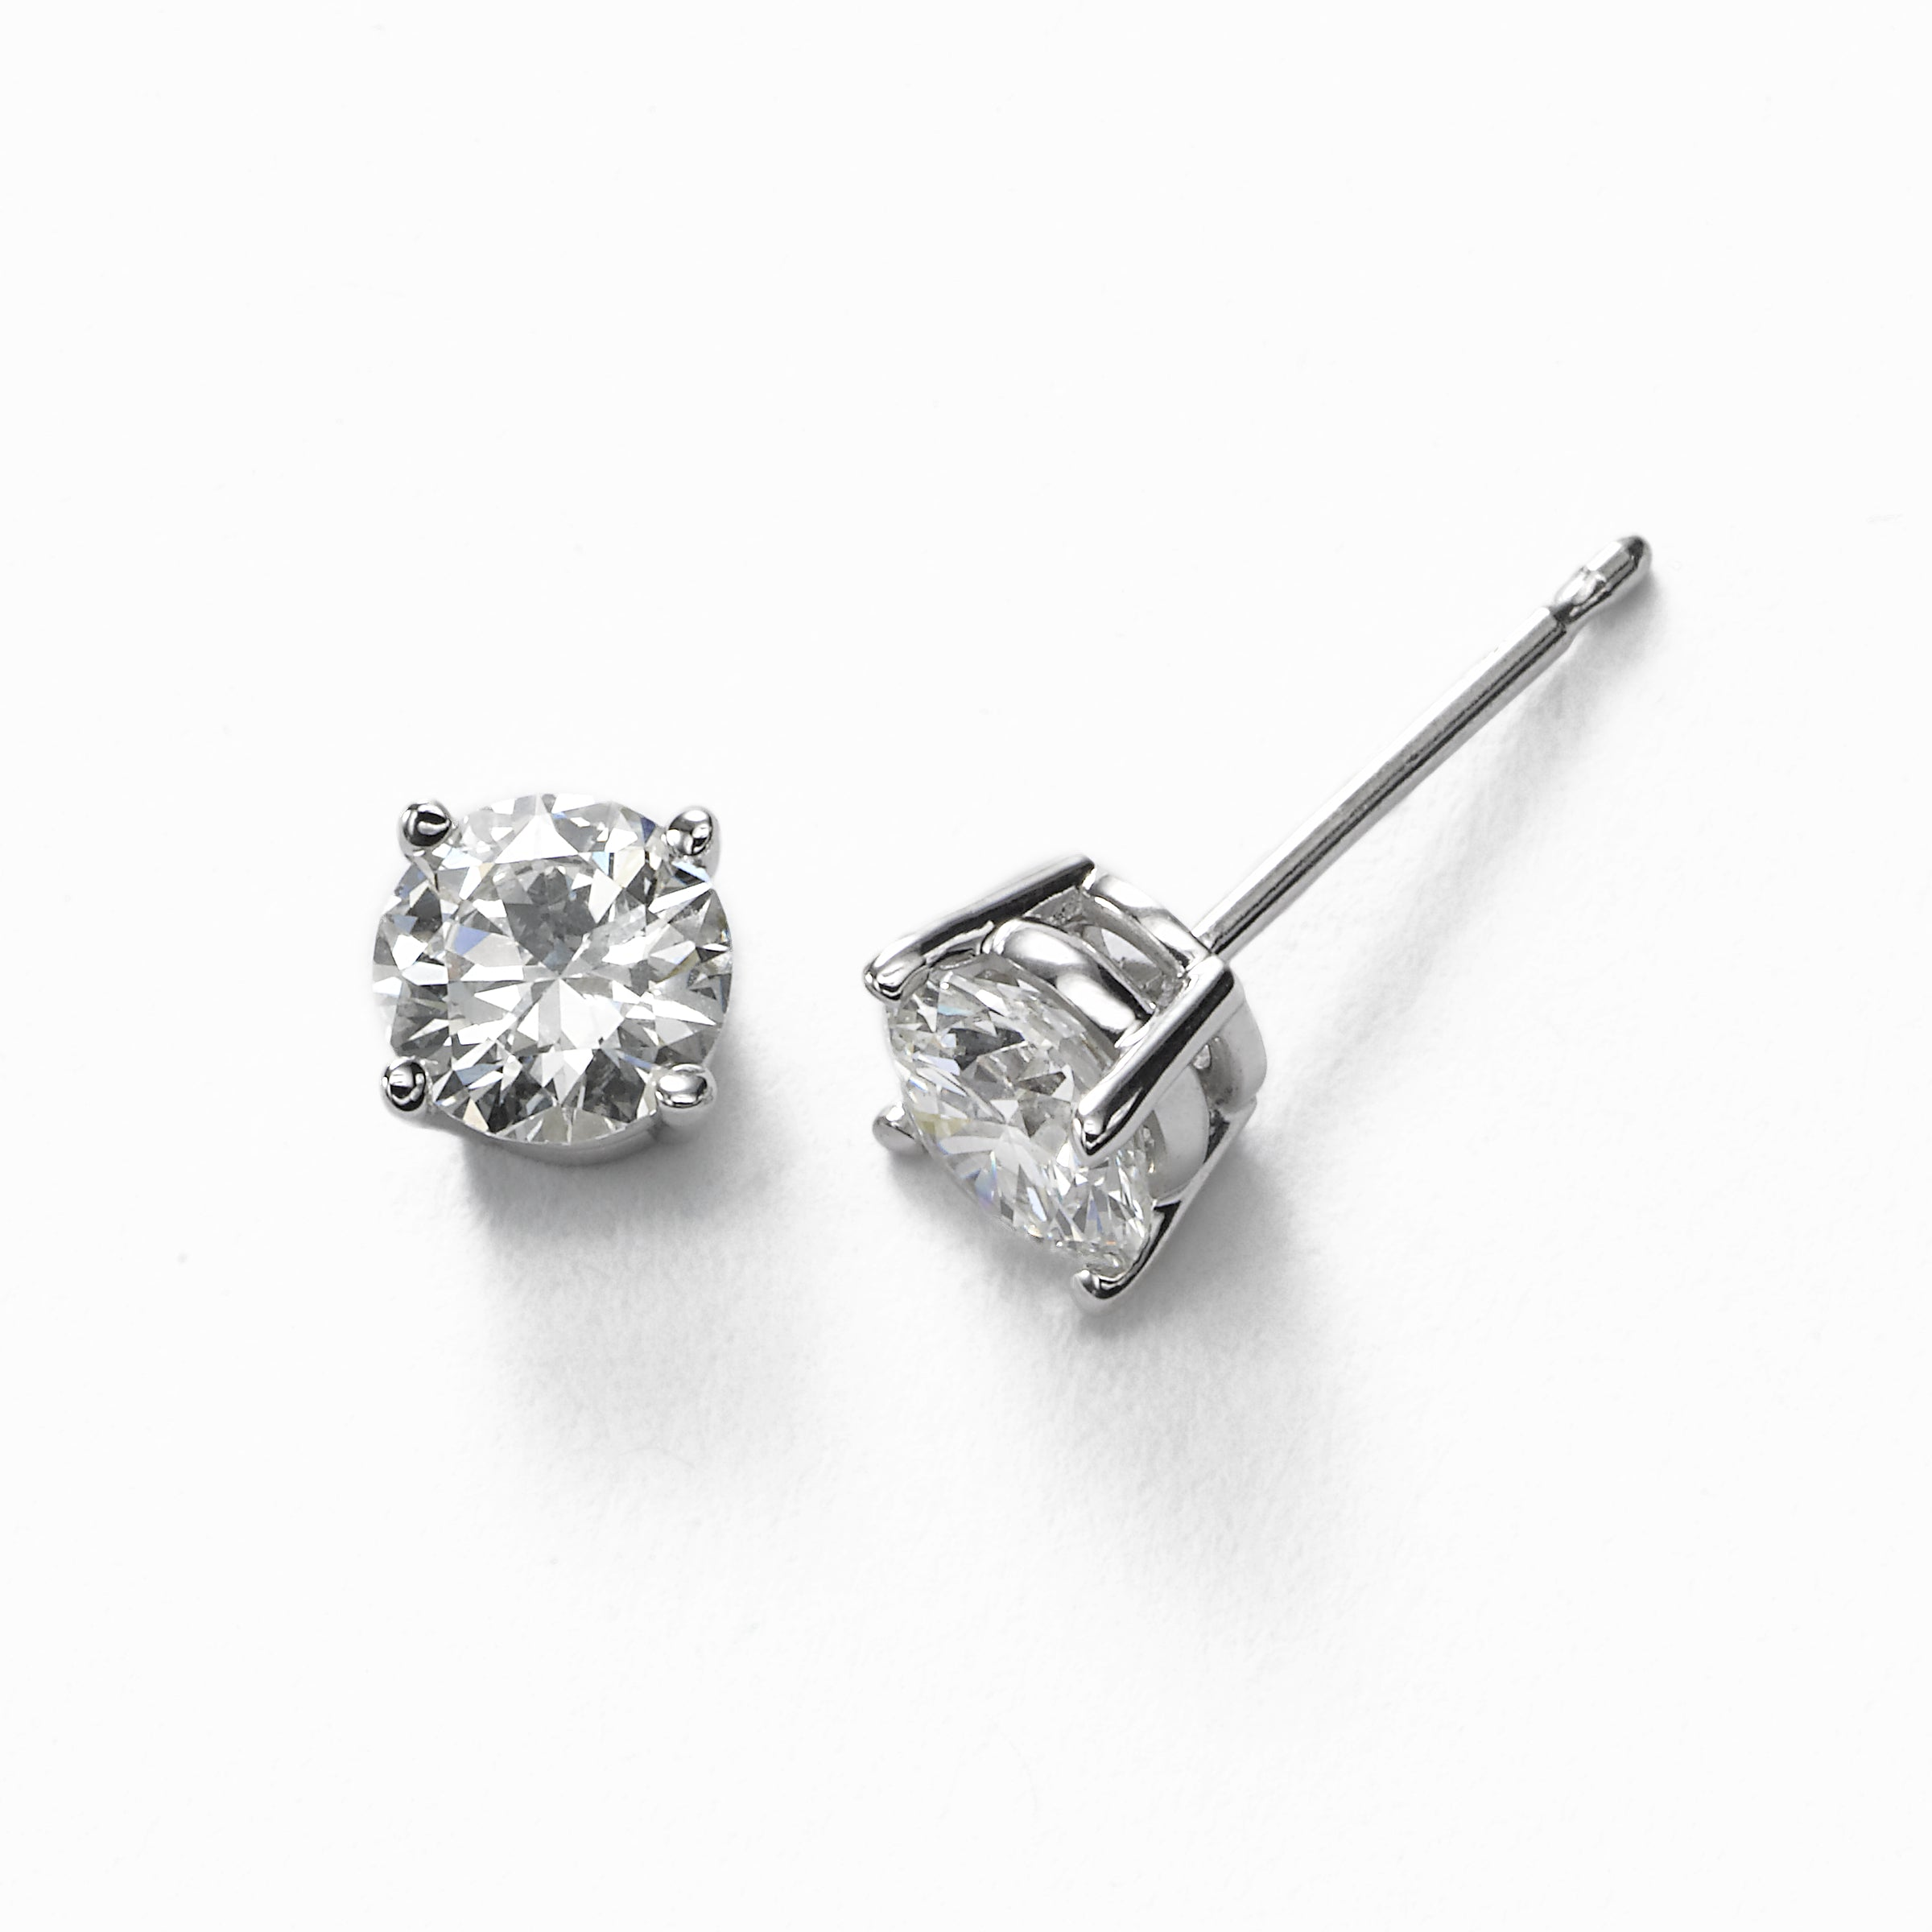 Diamond Stud Earrings, .70 Carat total, H/I-SI2, 14K White Gold